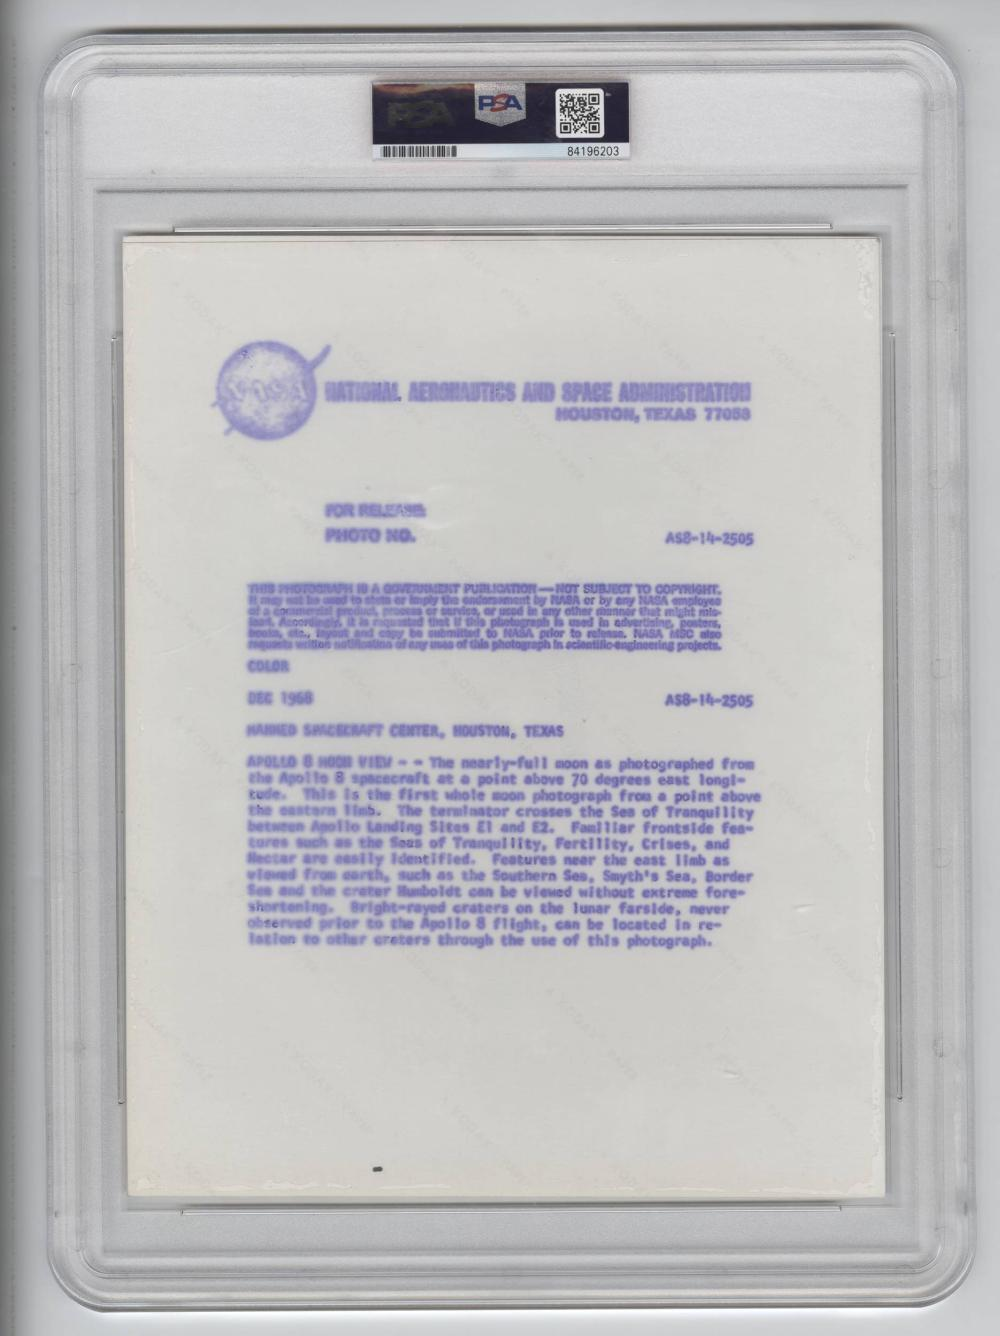 Official Red Number NASA Photo of the Apollo 8 Moon View, PSA Slabbed Authentic Type I